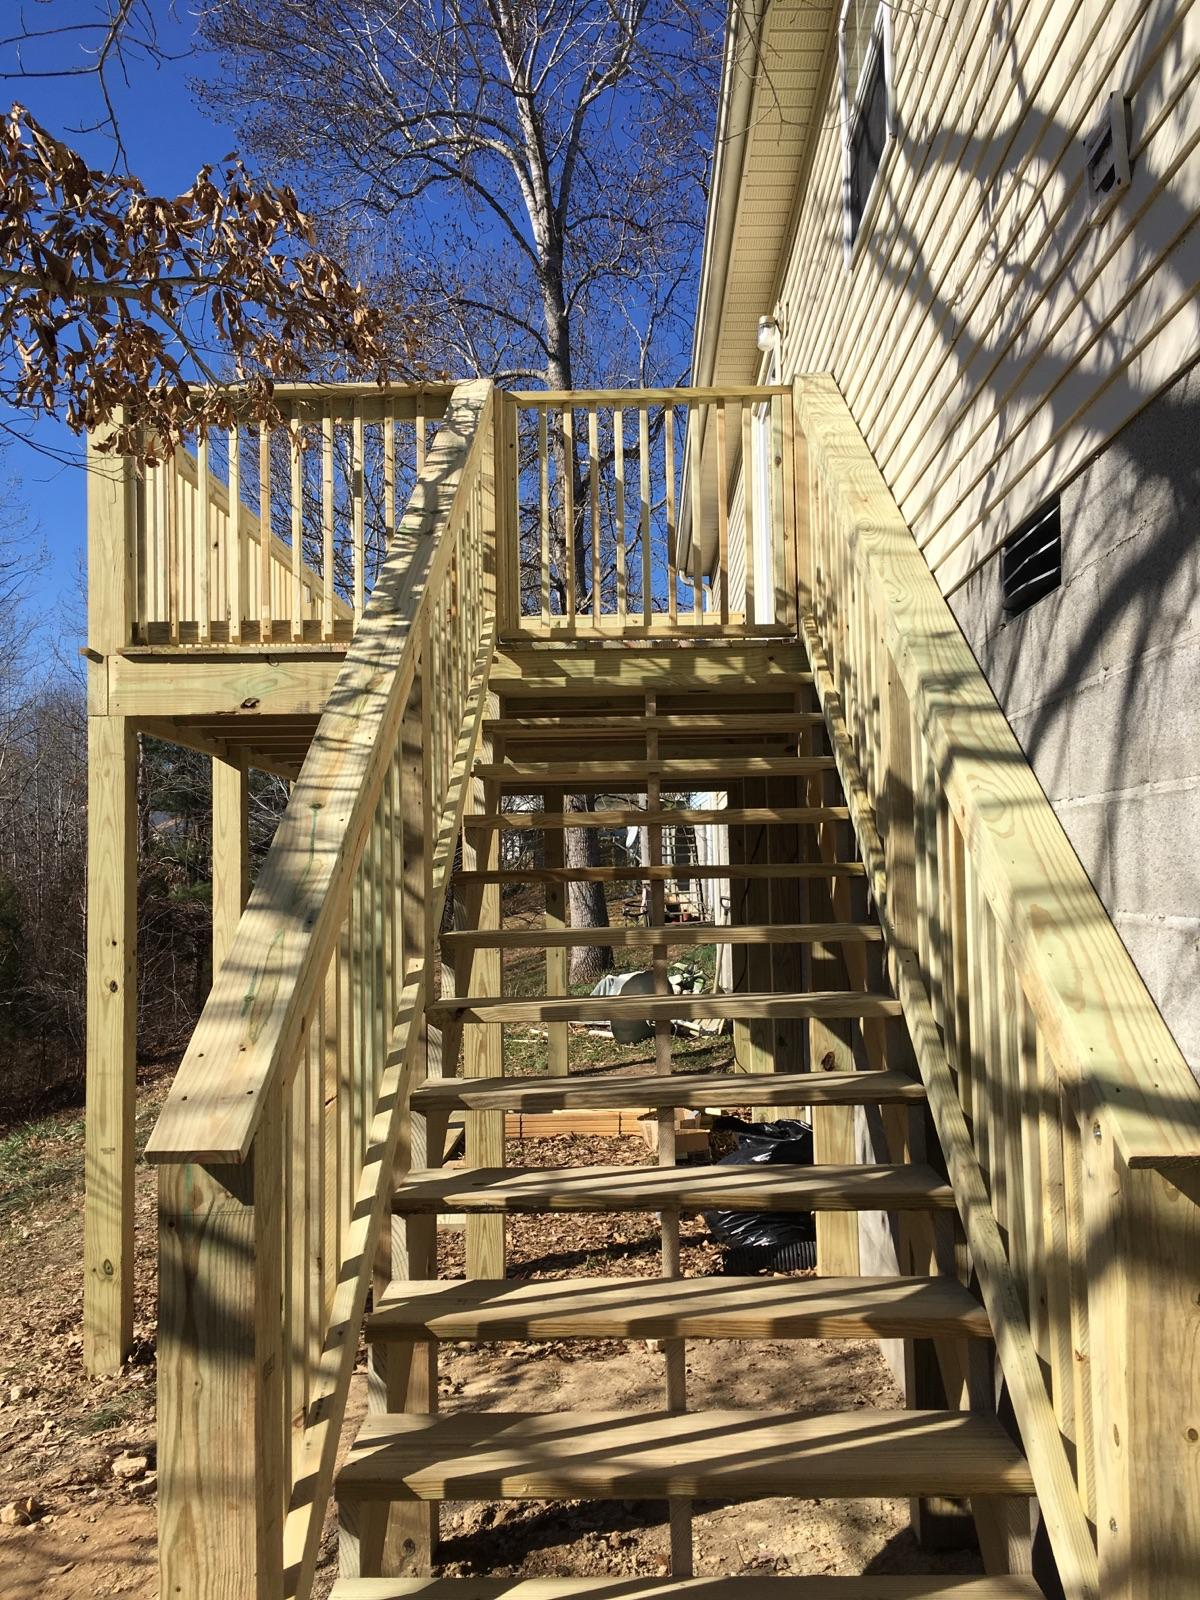 Interested in a new deck? Repairing your old deck?